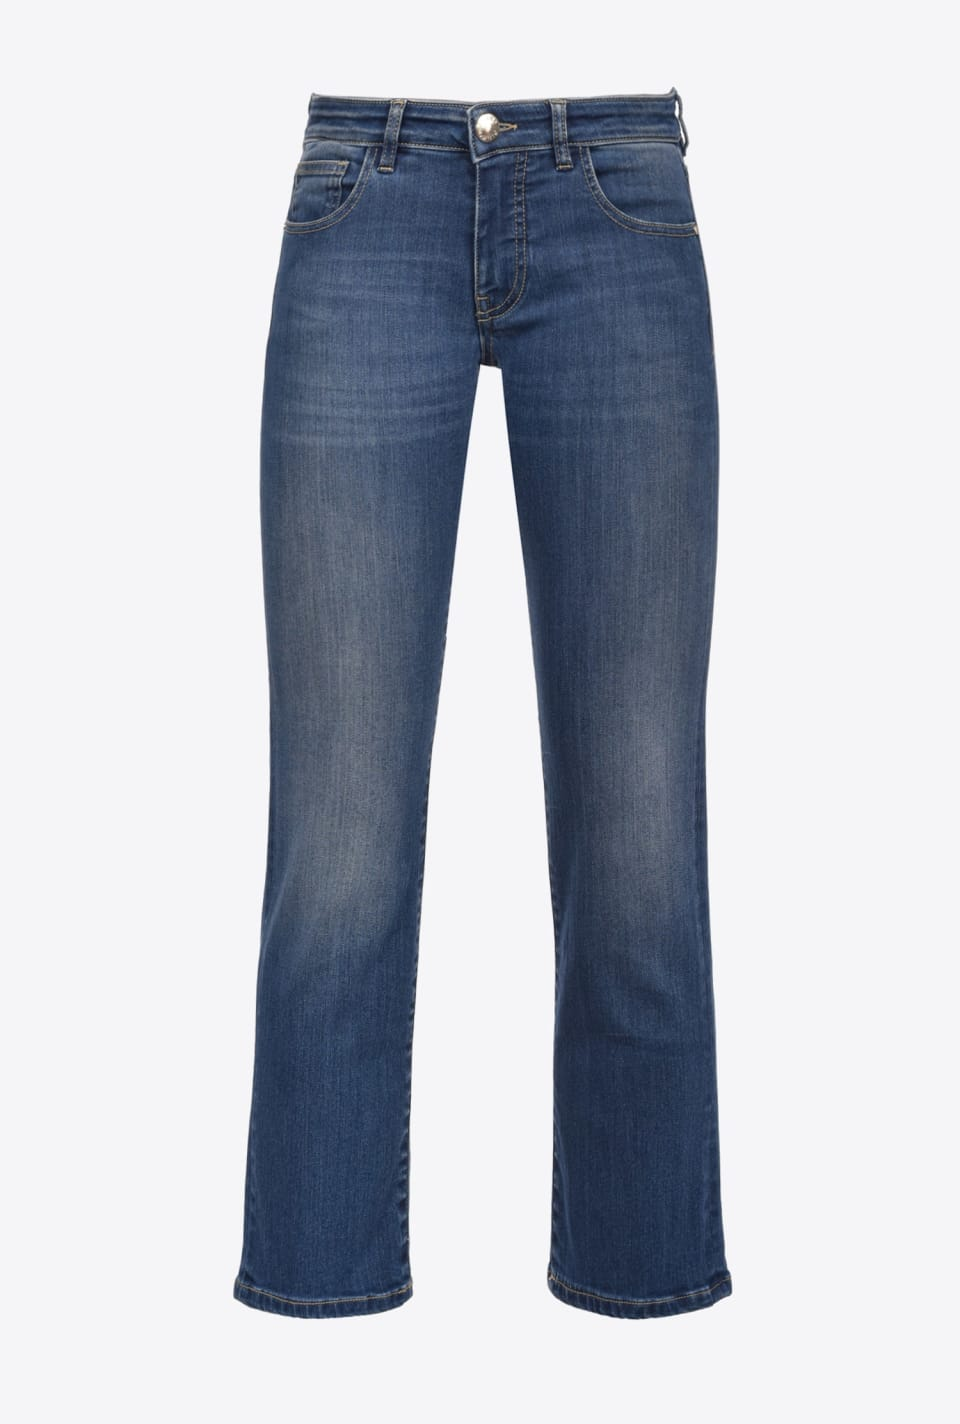 Low-waist slim straight jeans - Pinko